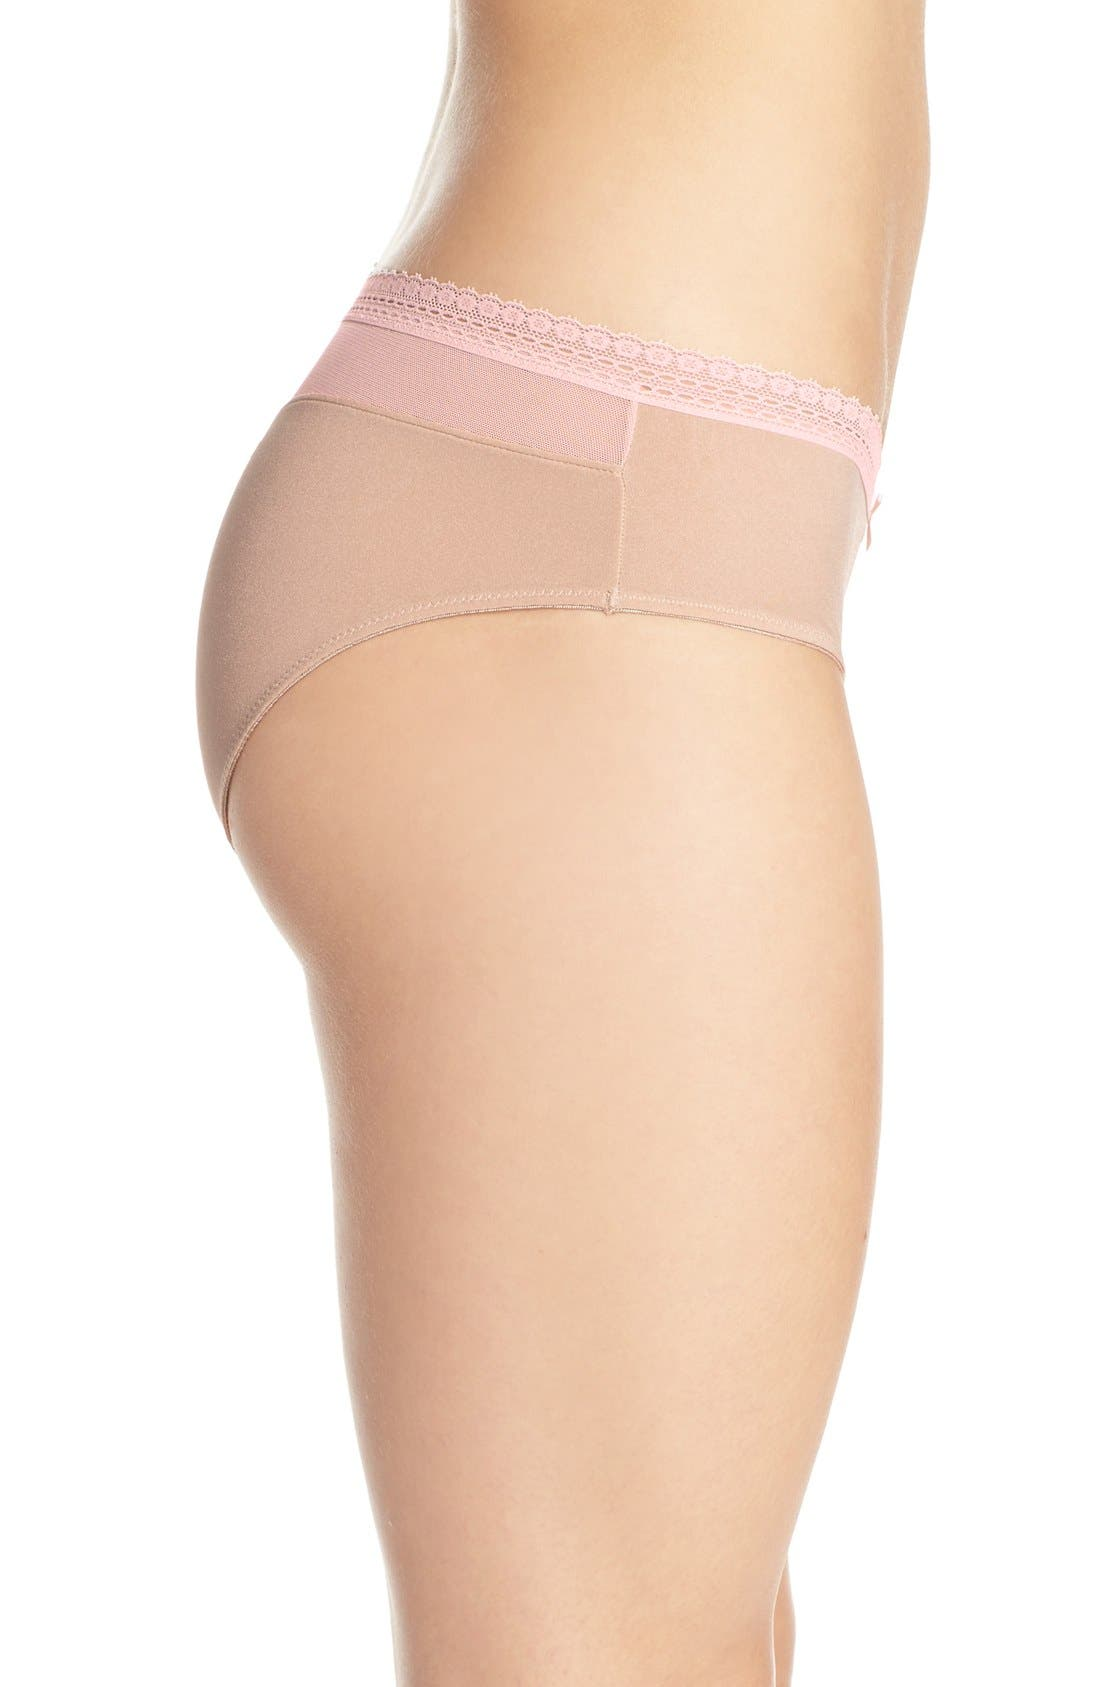 Alternate Image 3  - Betsey Johnson 'Forever Perfect - Cutie' Hipster Briefs (3 for $33)